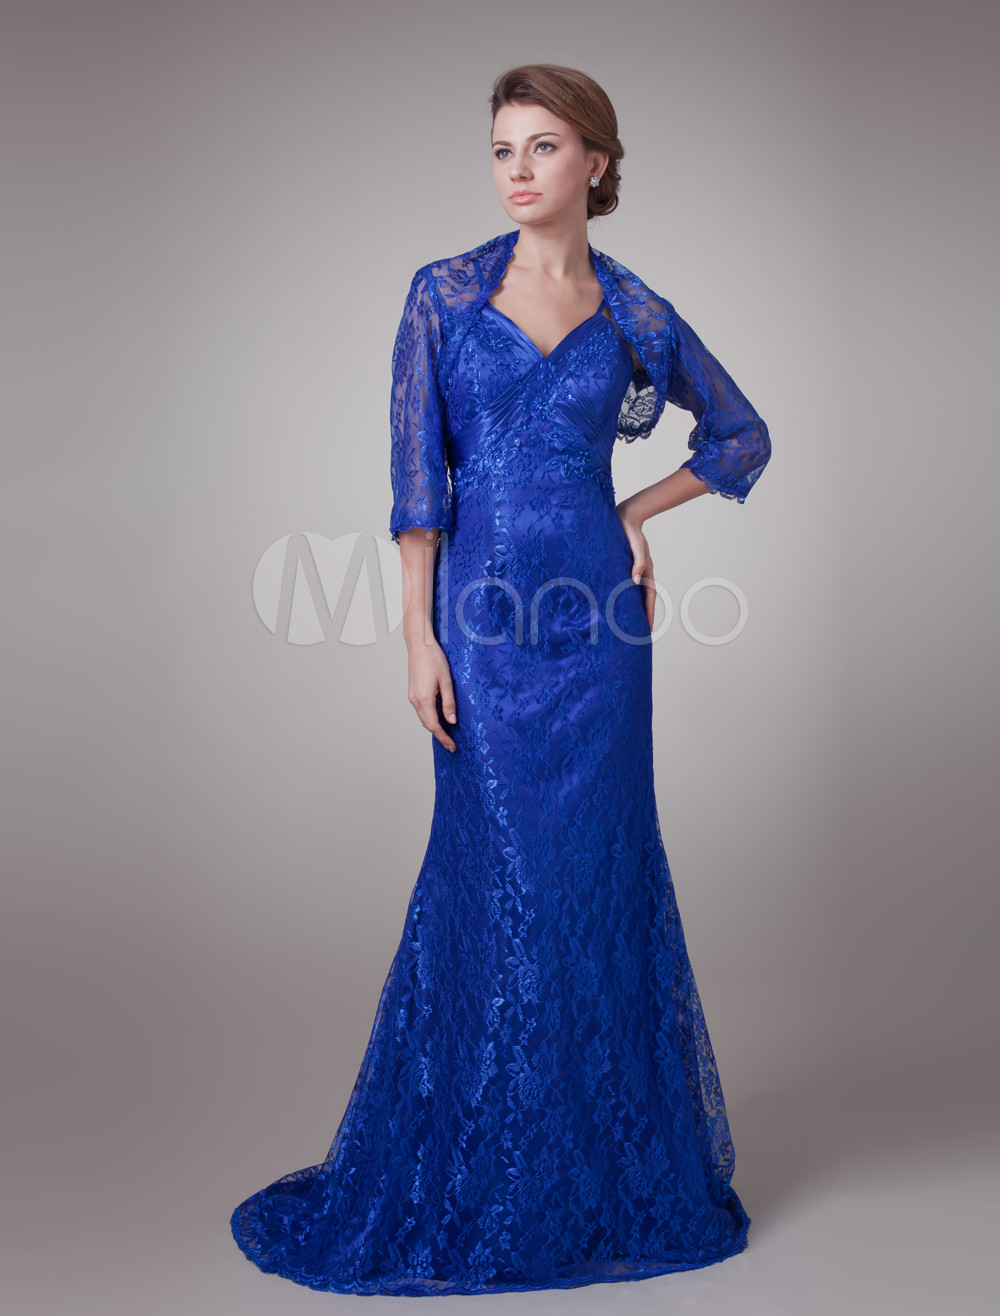 Hot Royal Blue Satin Sweetheart A-Line Mother of The Bride Dress (Wedding) photo